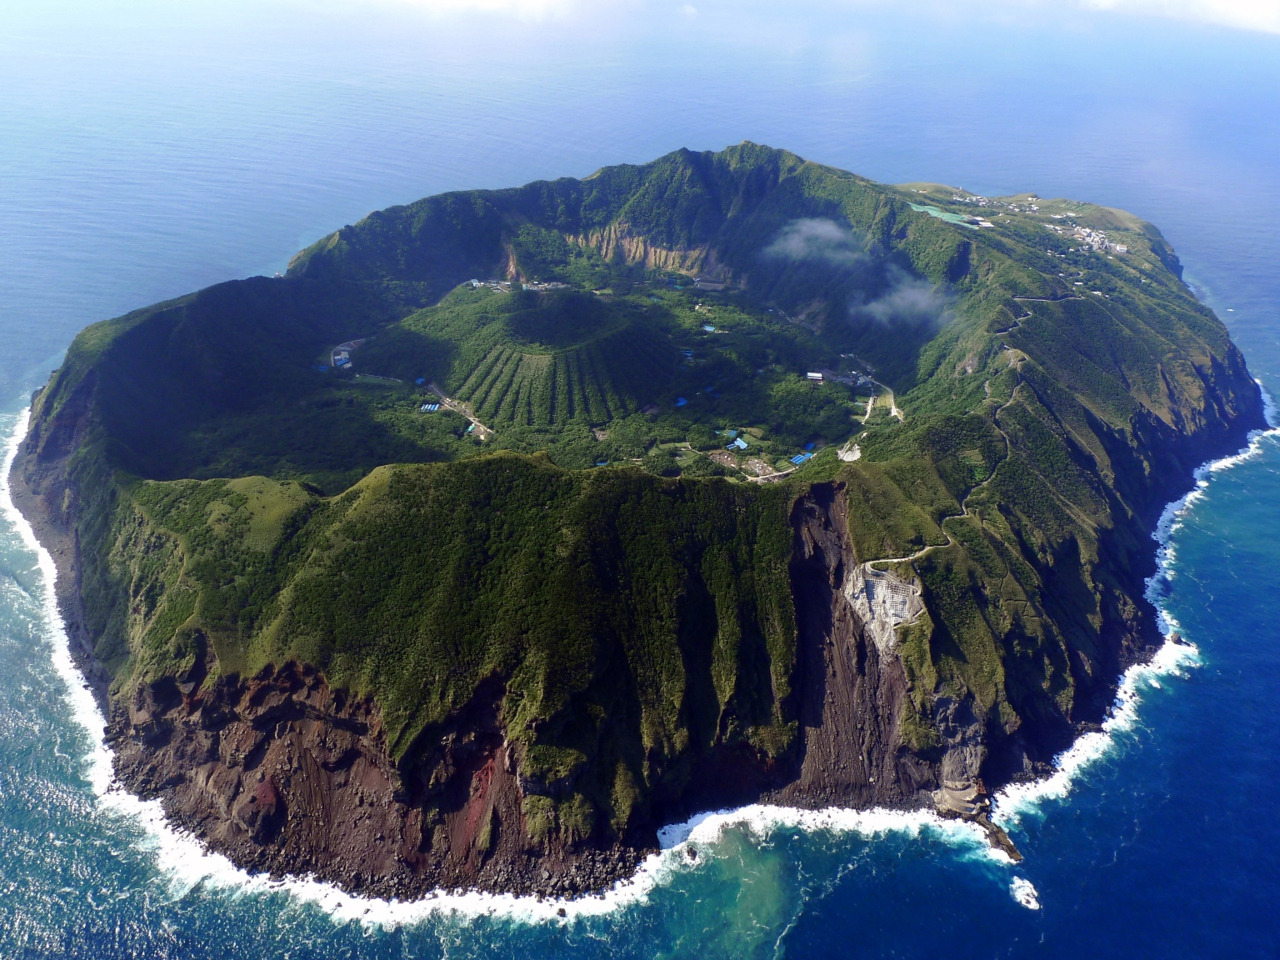 Aogashima Island, Japan (more photos of the island by Izuyan)